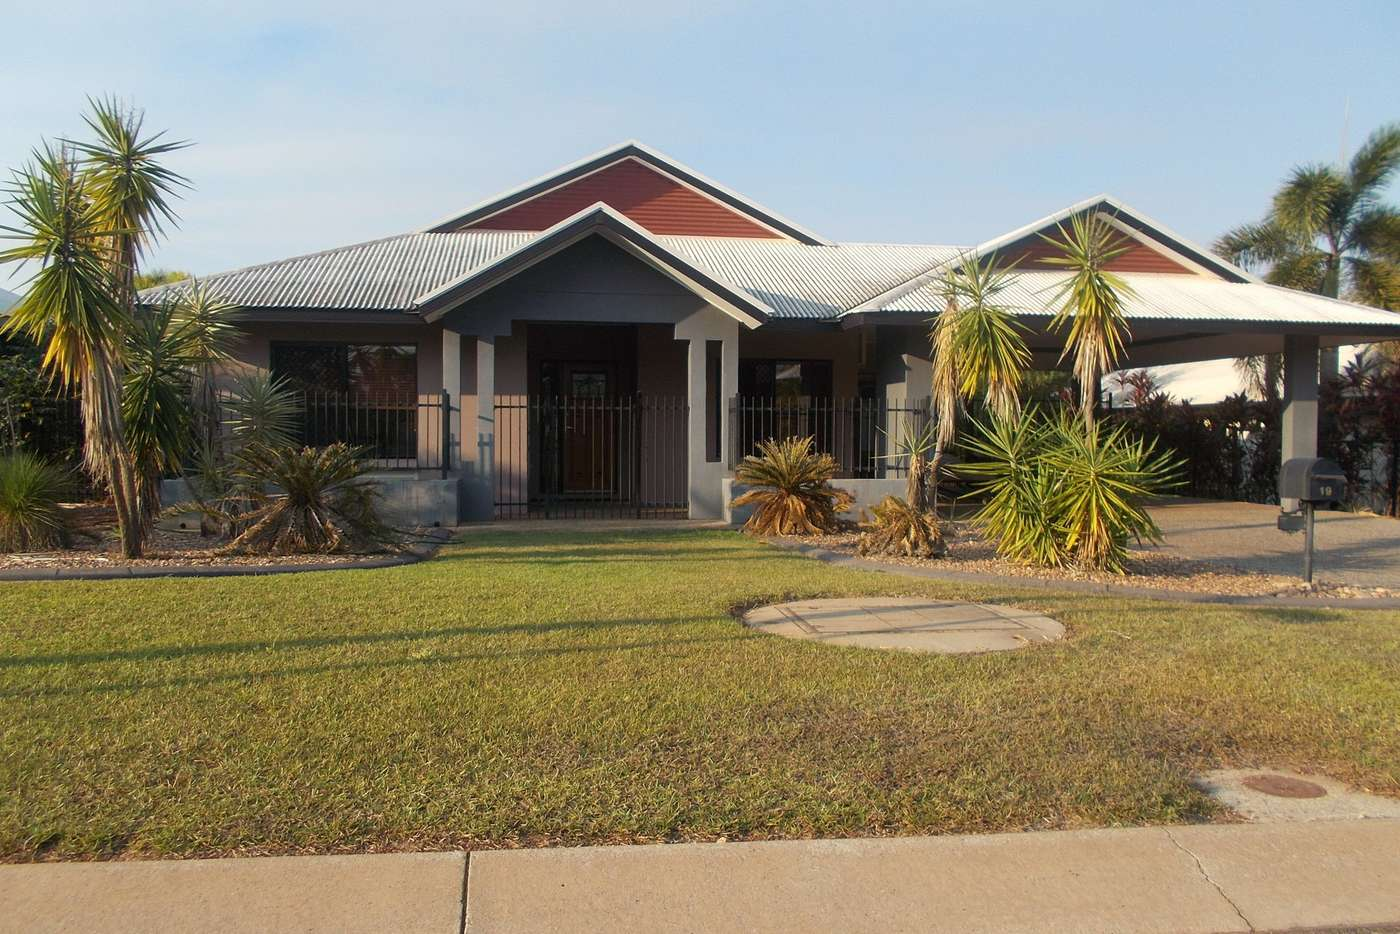 Main view of Homely house listing, 19 Juma Place, Rosebery NT 832